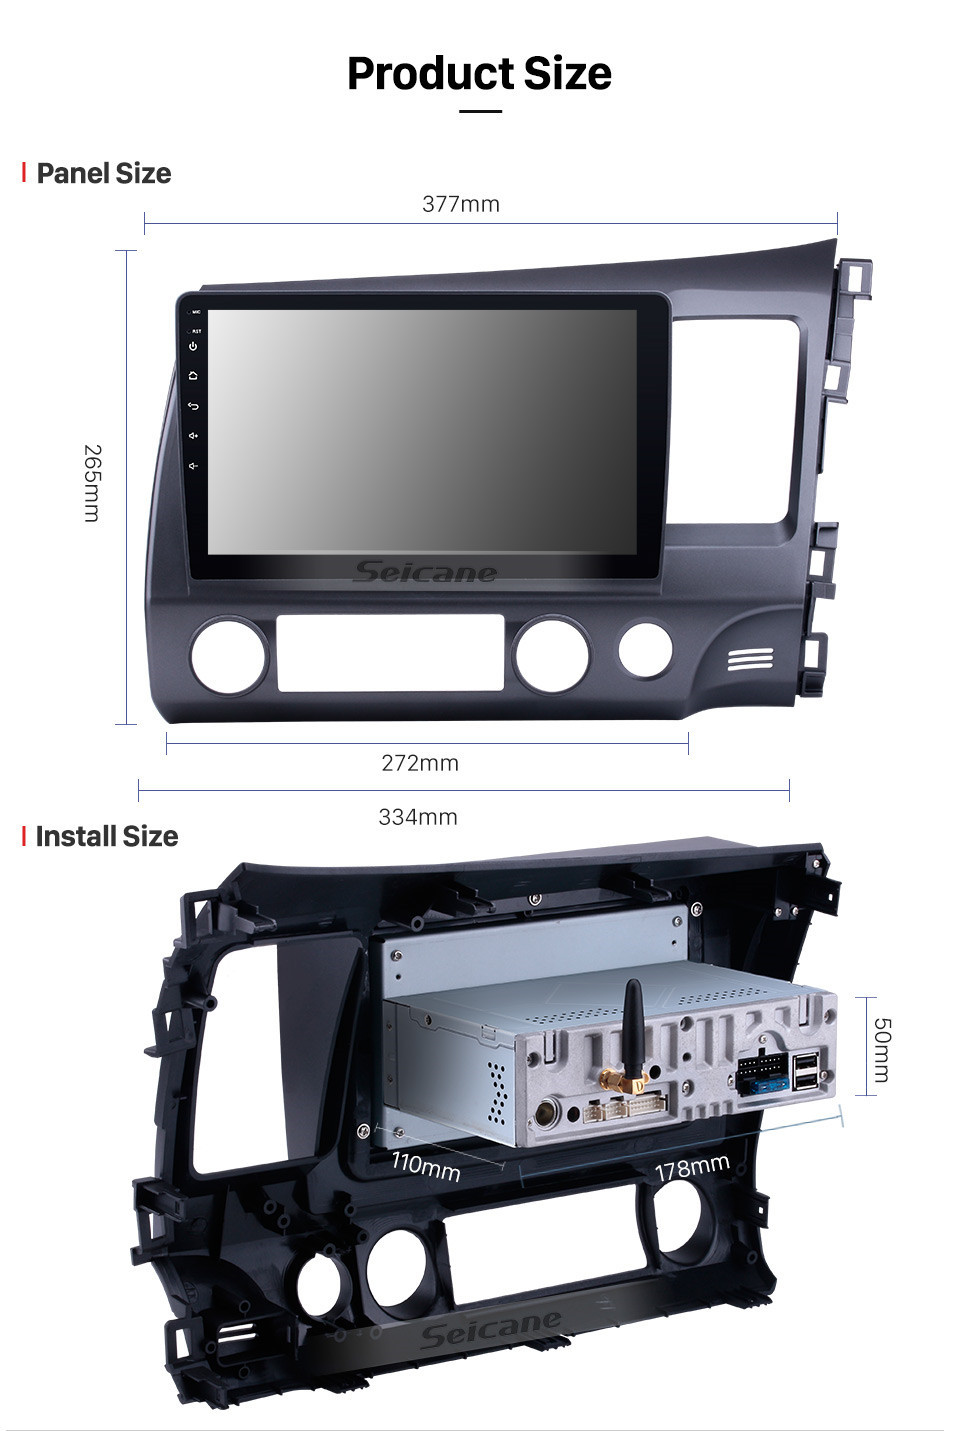 Seicane OEM Android 10.0 2006-2011 Honda CIVIC RHD Radio Upgrade with Autoradio Bluetooth GPS System 1024*600 Multi-touch Capacitive Screen CD DVD Player 3G WiFi Mirror Link OBD2 Auto AV in/out USB SD MP3 MP4 AUX DVR Reverse Camera